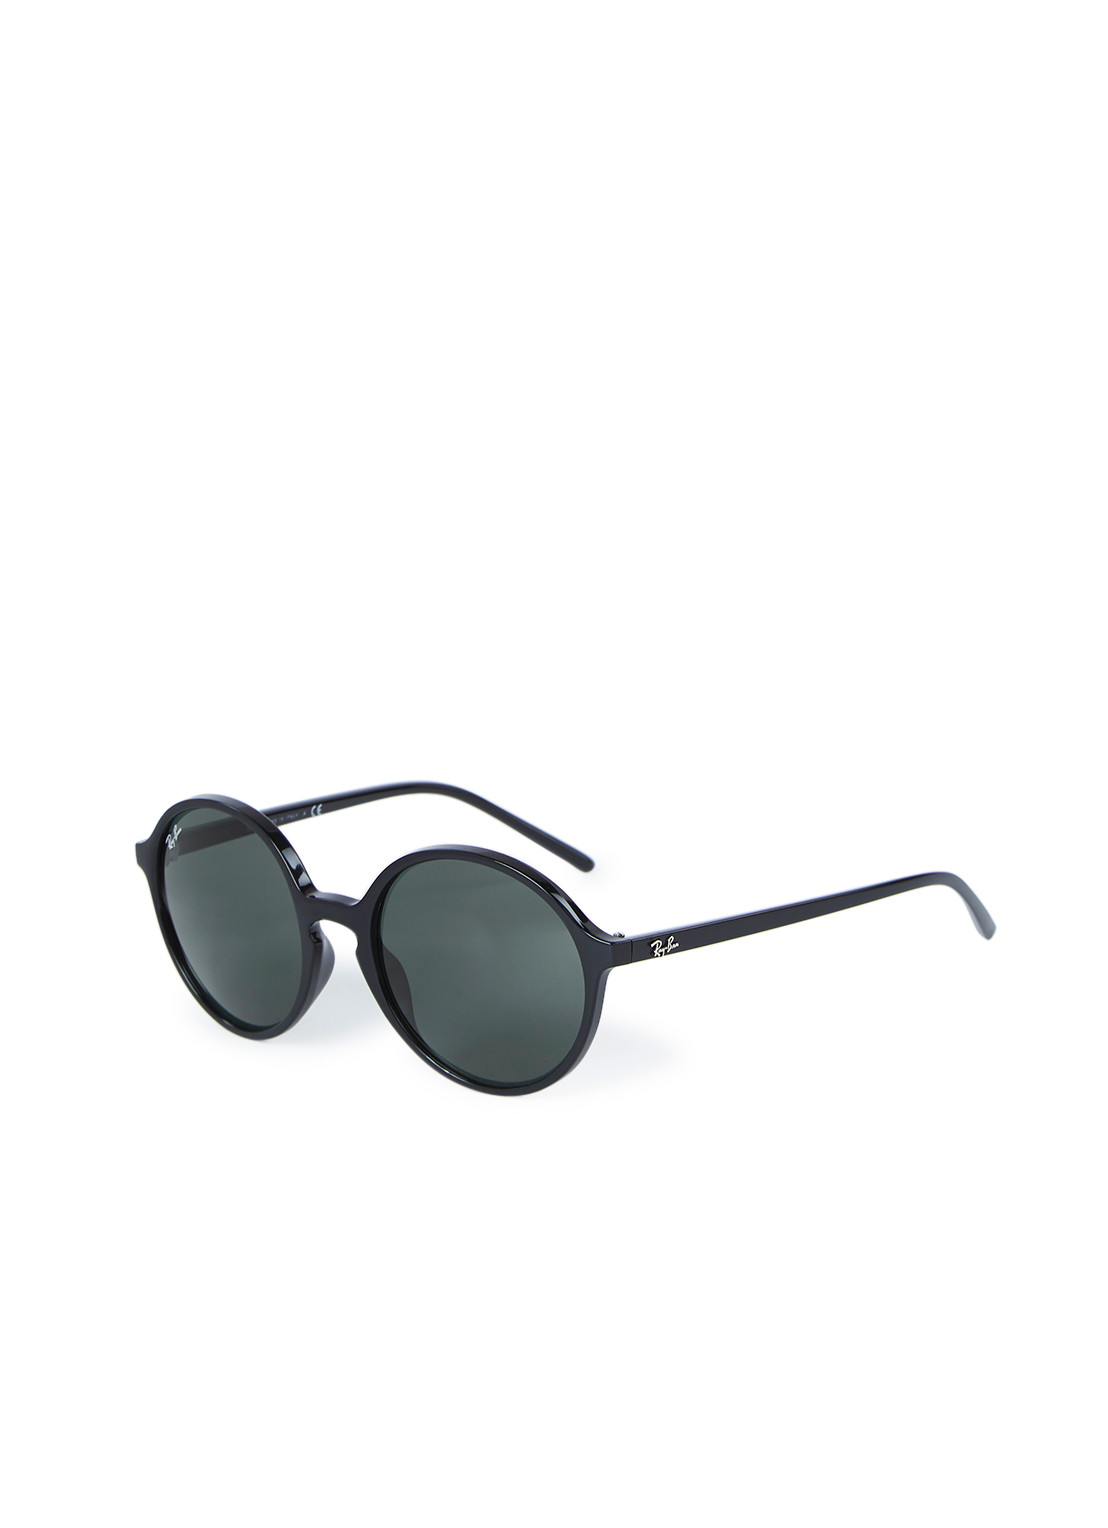 Ray Ban Zonnebril RB4304